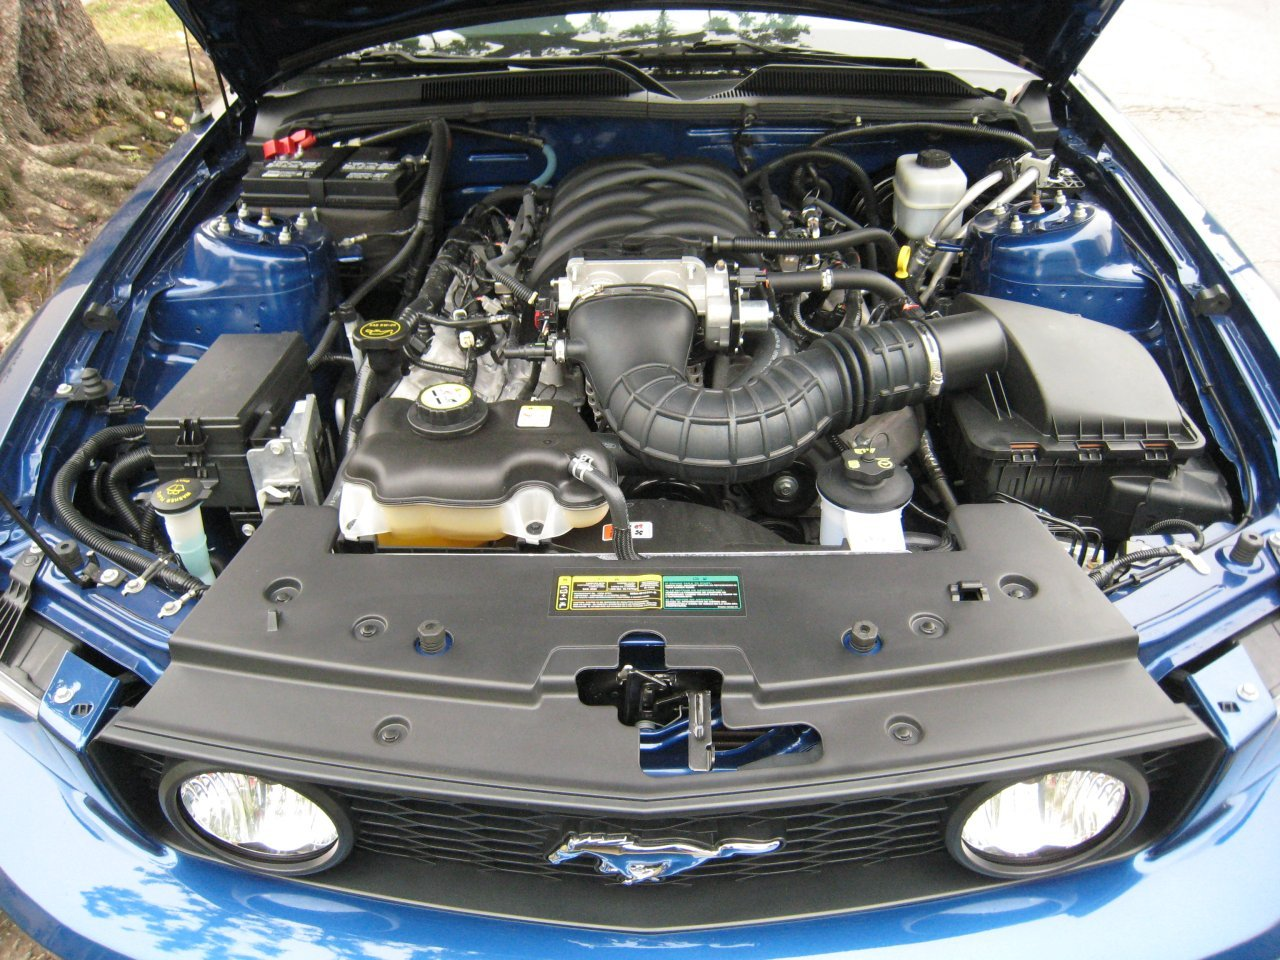 Ford Mustang engine #1